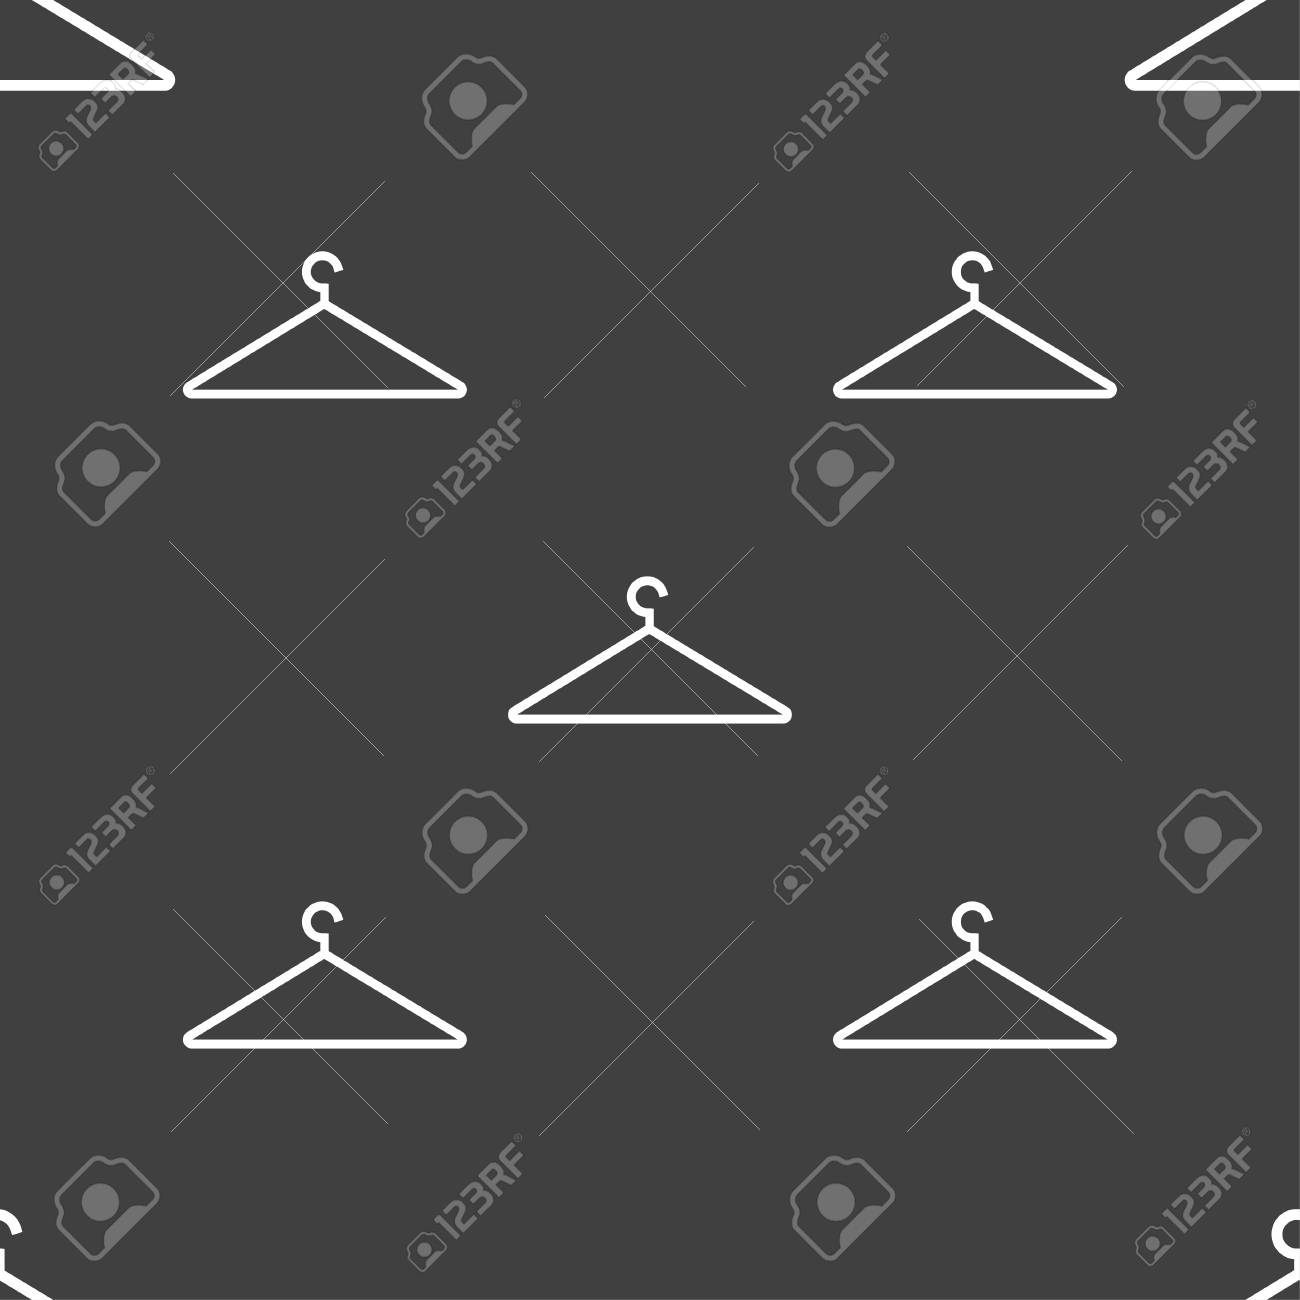 Clothes Hanger Icon Sign Seamless Pattern On A Gray Background